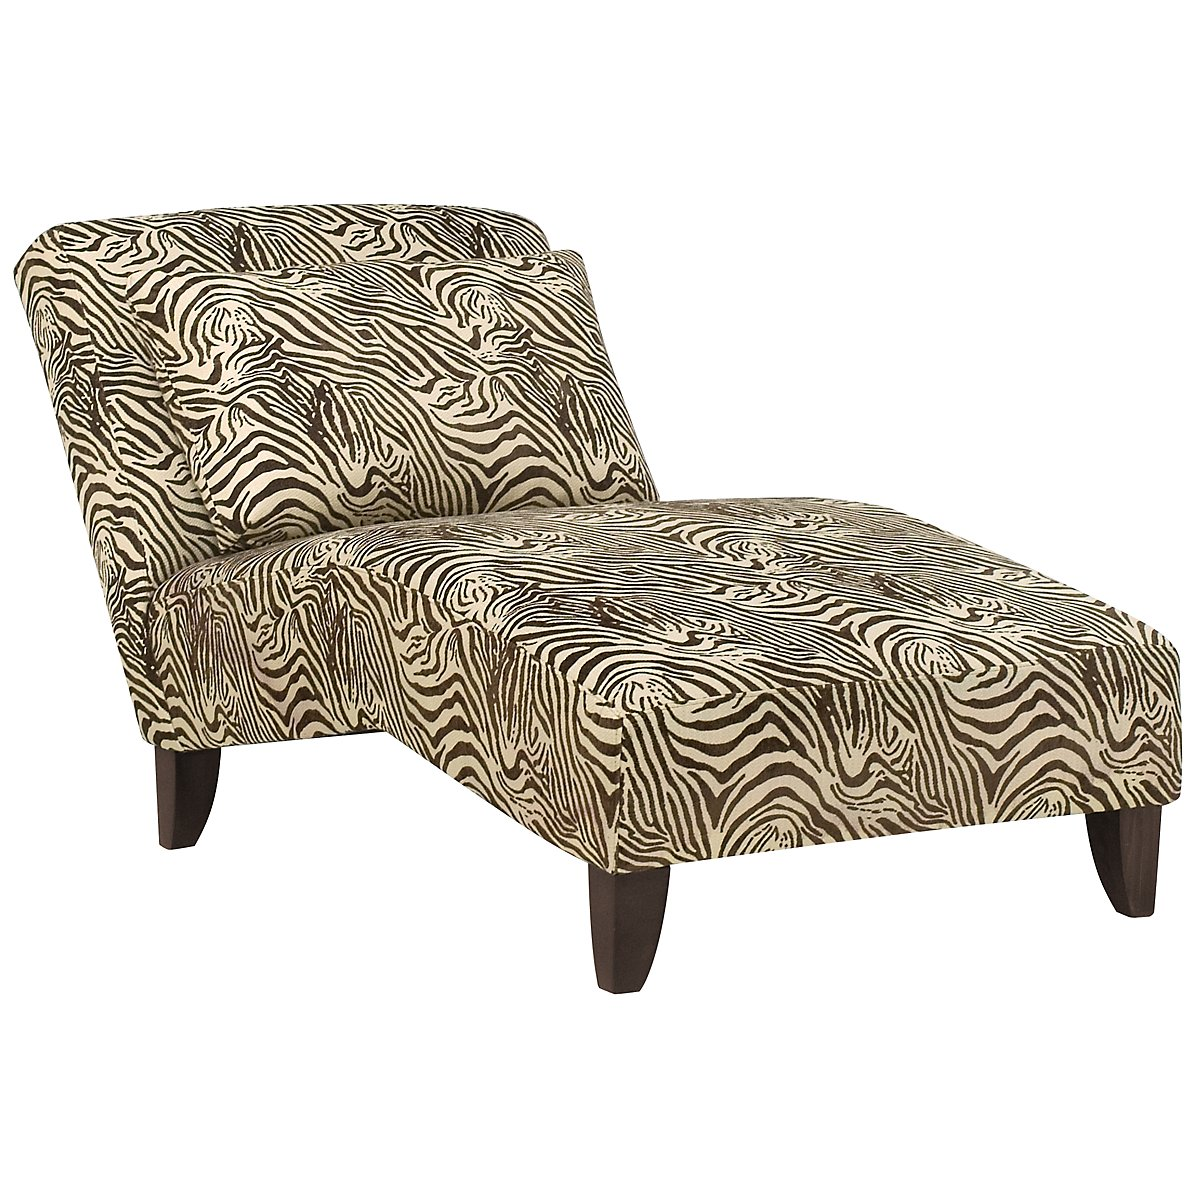 Kenya2 Multi Fabric Chaise